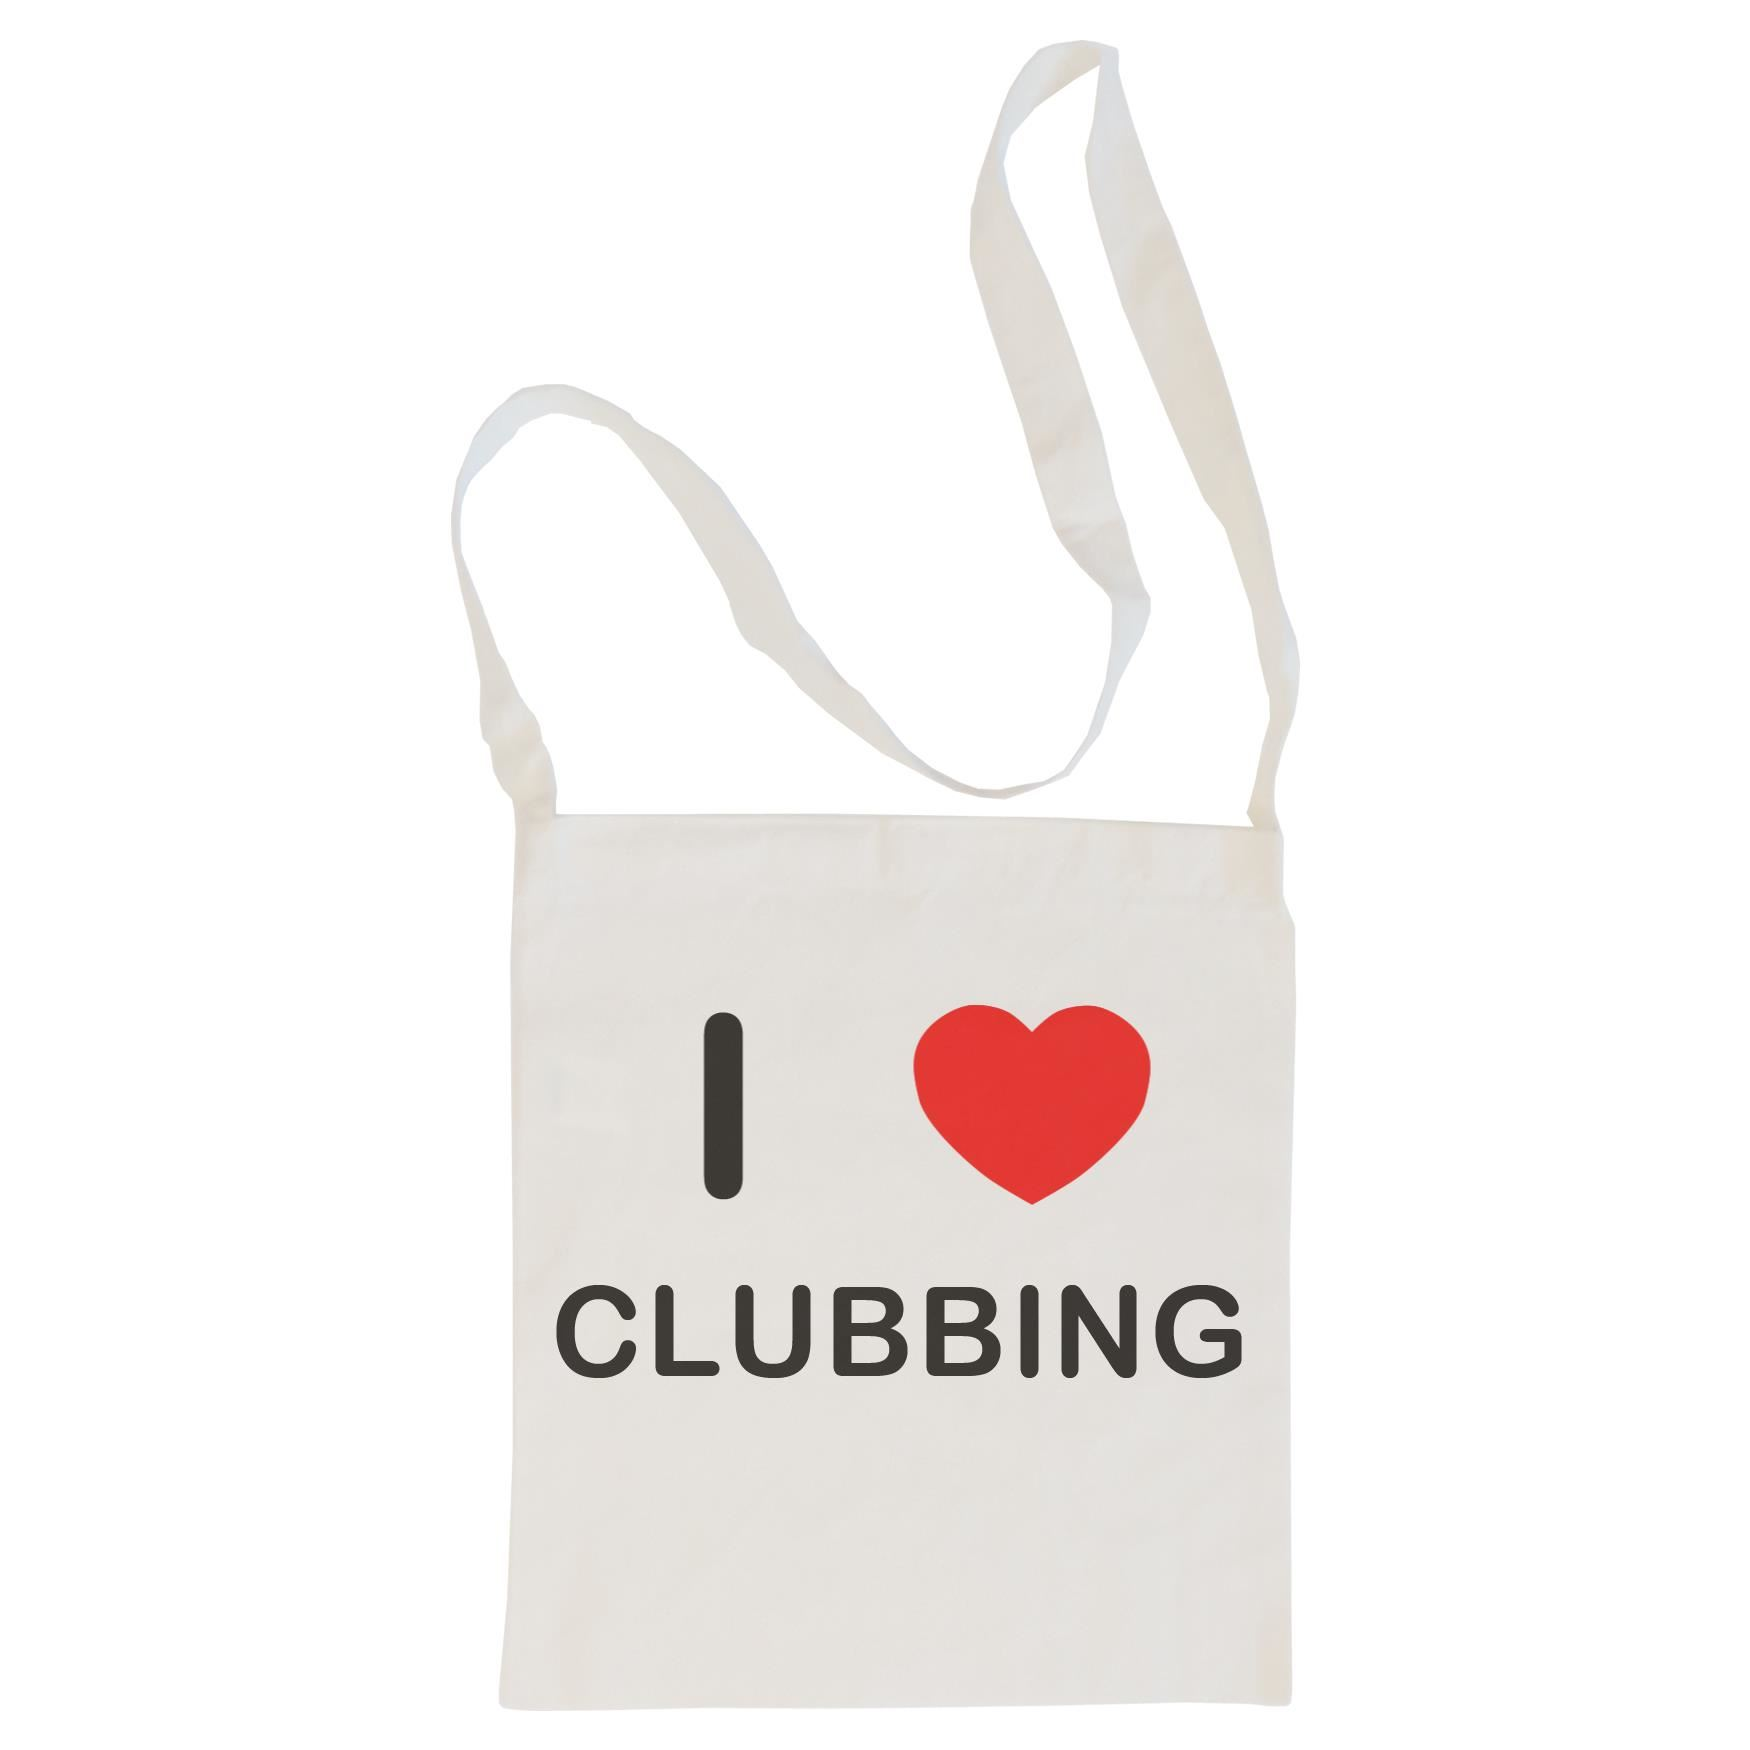 I Love Clubbing - Cotton Bag | Size choice Tote, Shopper or Sling